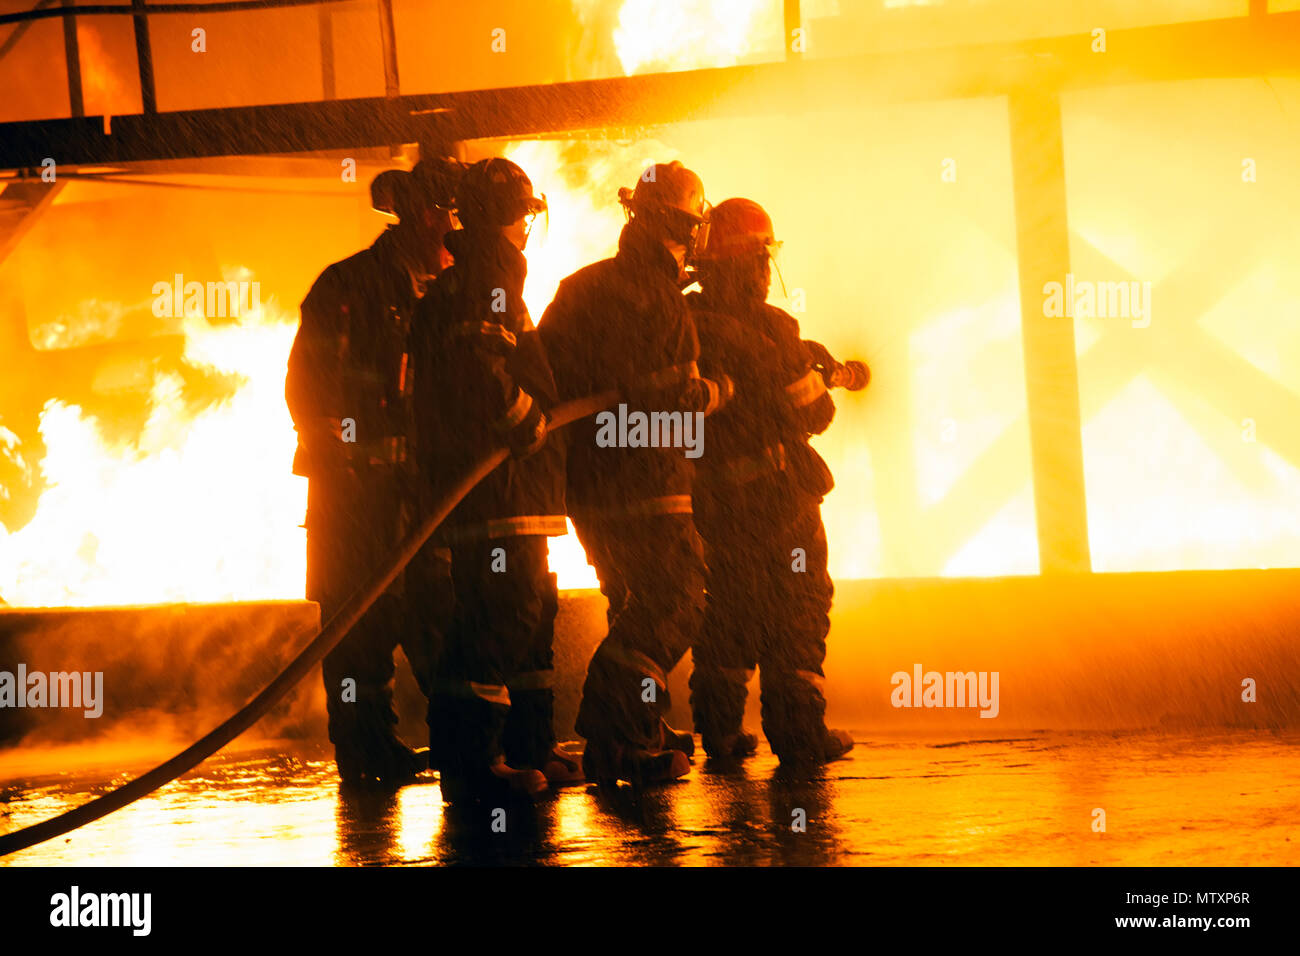 JOHANNESBURG, SOUTH AFRICA - MAY, 2018 Closeup of firefighters fighting fire during firefighting training exercise - Stock Image